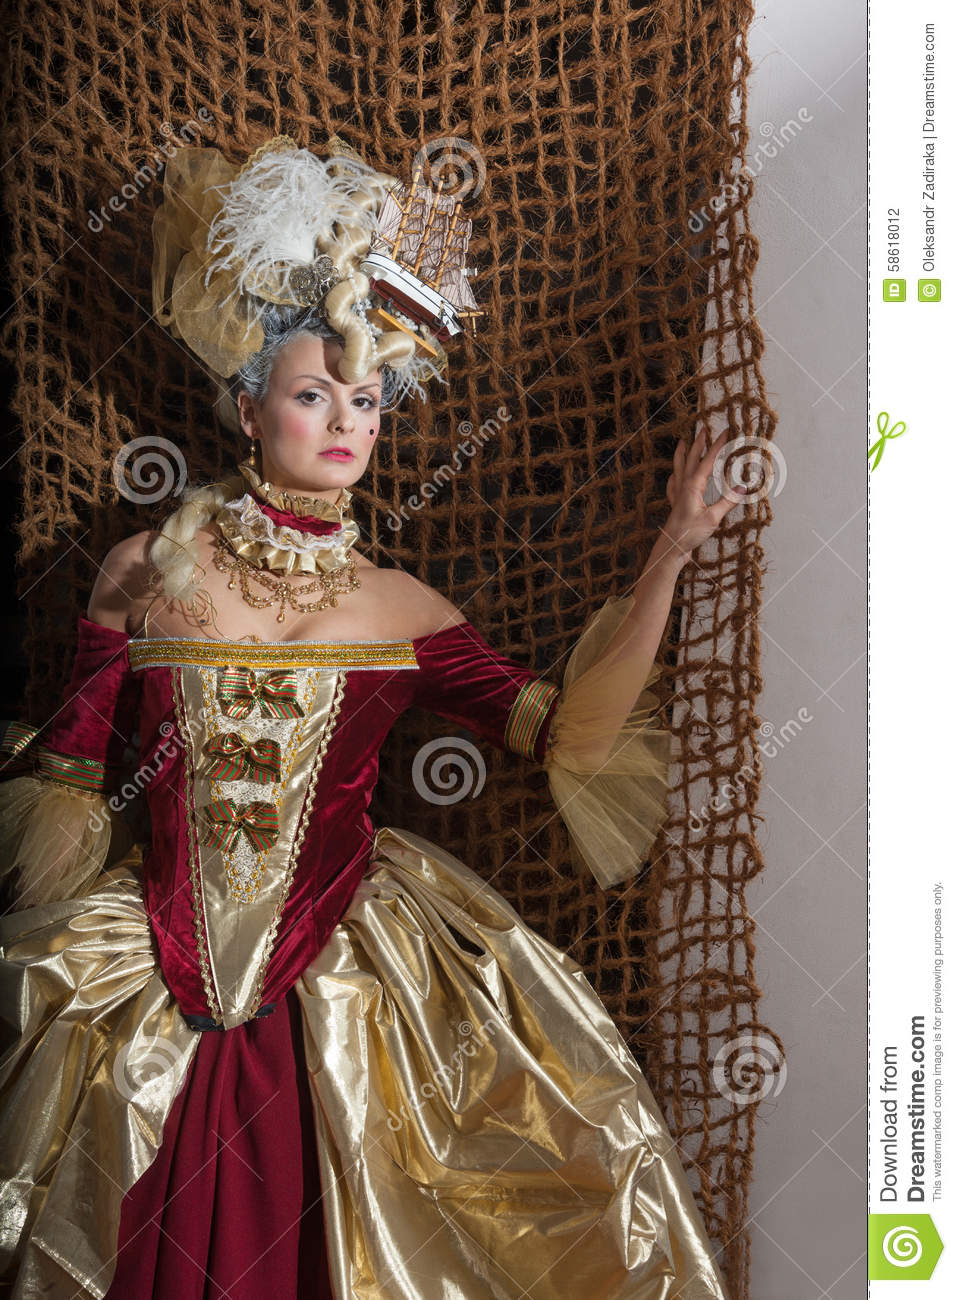 Revival Women Stock Photo Image Of Headdress Clothing 58618012